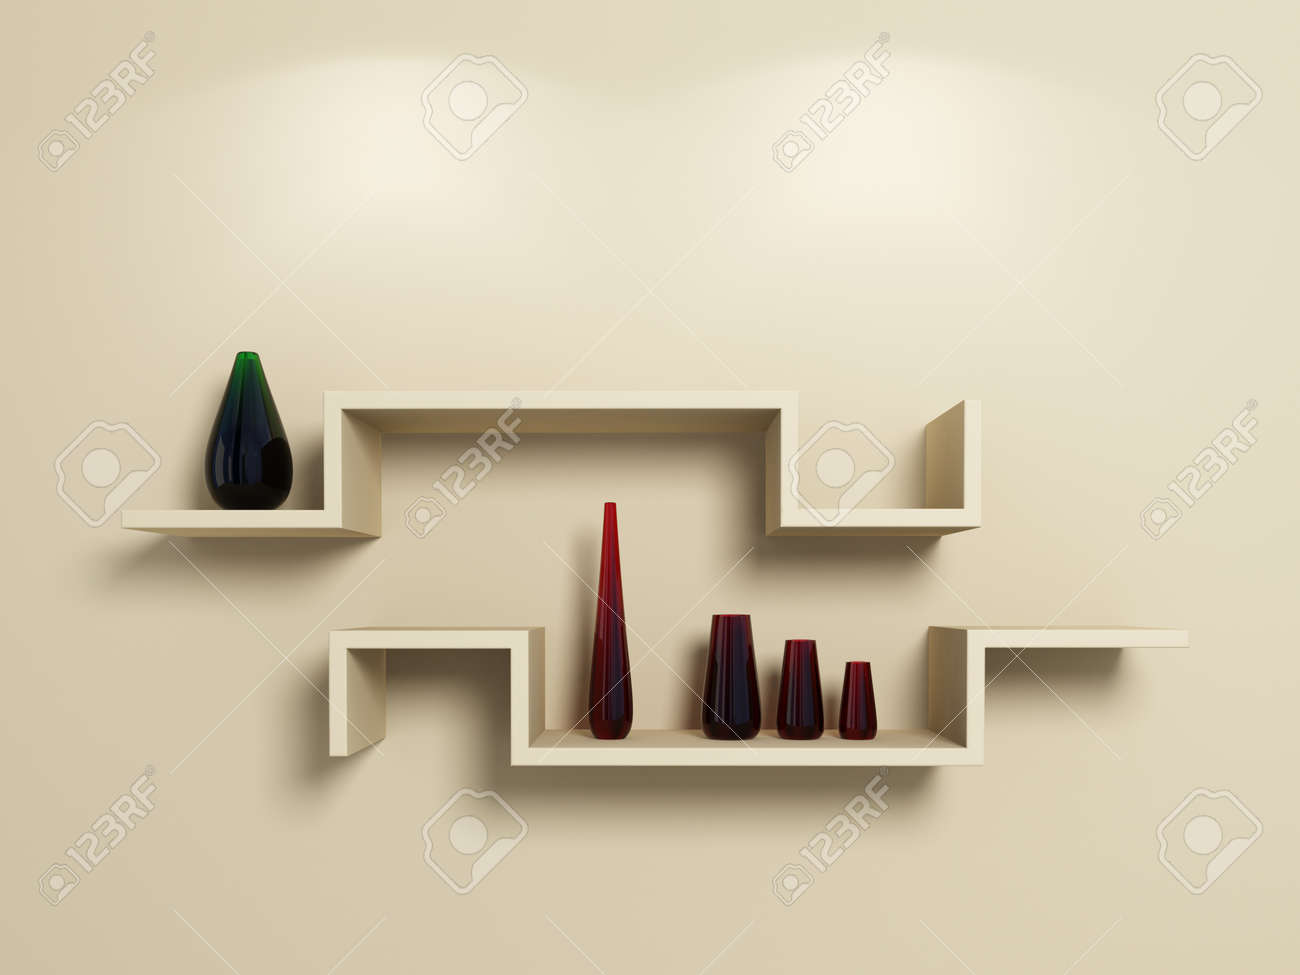 Modern shelves on beige wall with glassy red and green vases.3d rendered. Stock Photo - 12217792